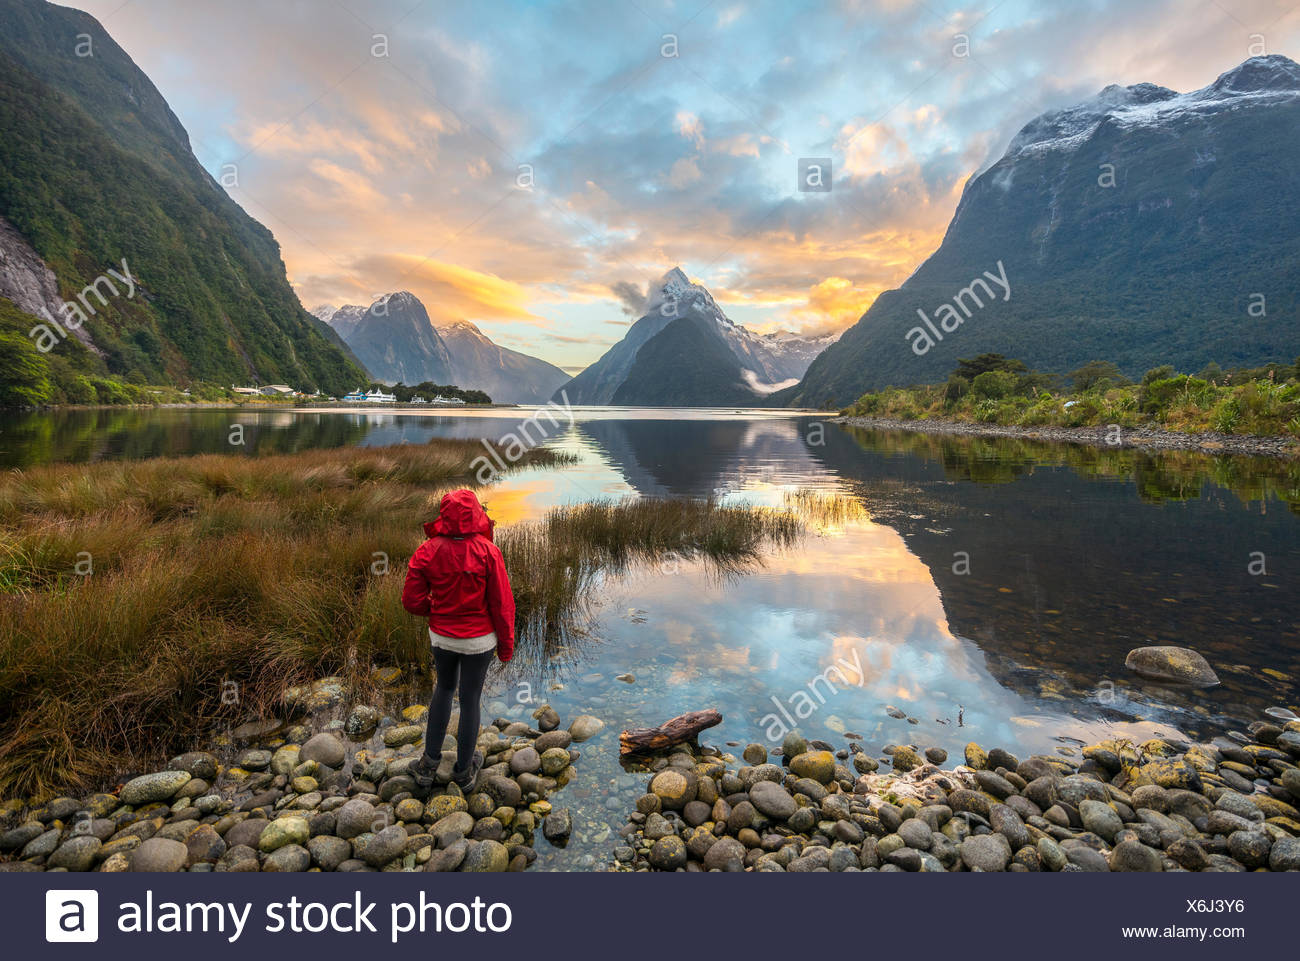 Tourist looking at the landscape, Miter Peak reflected in the water, sunset, Milford Sound, Fiordland National Park, Te Anau - Stock Image